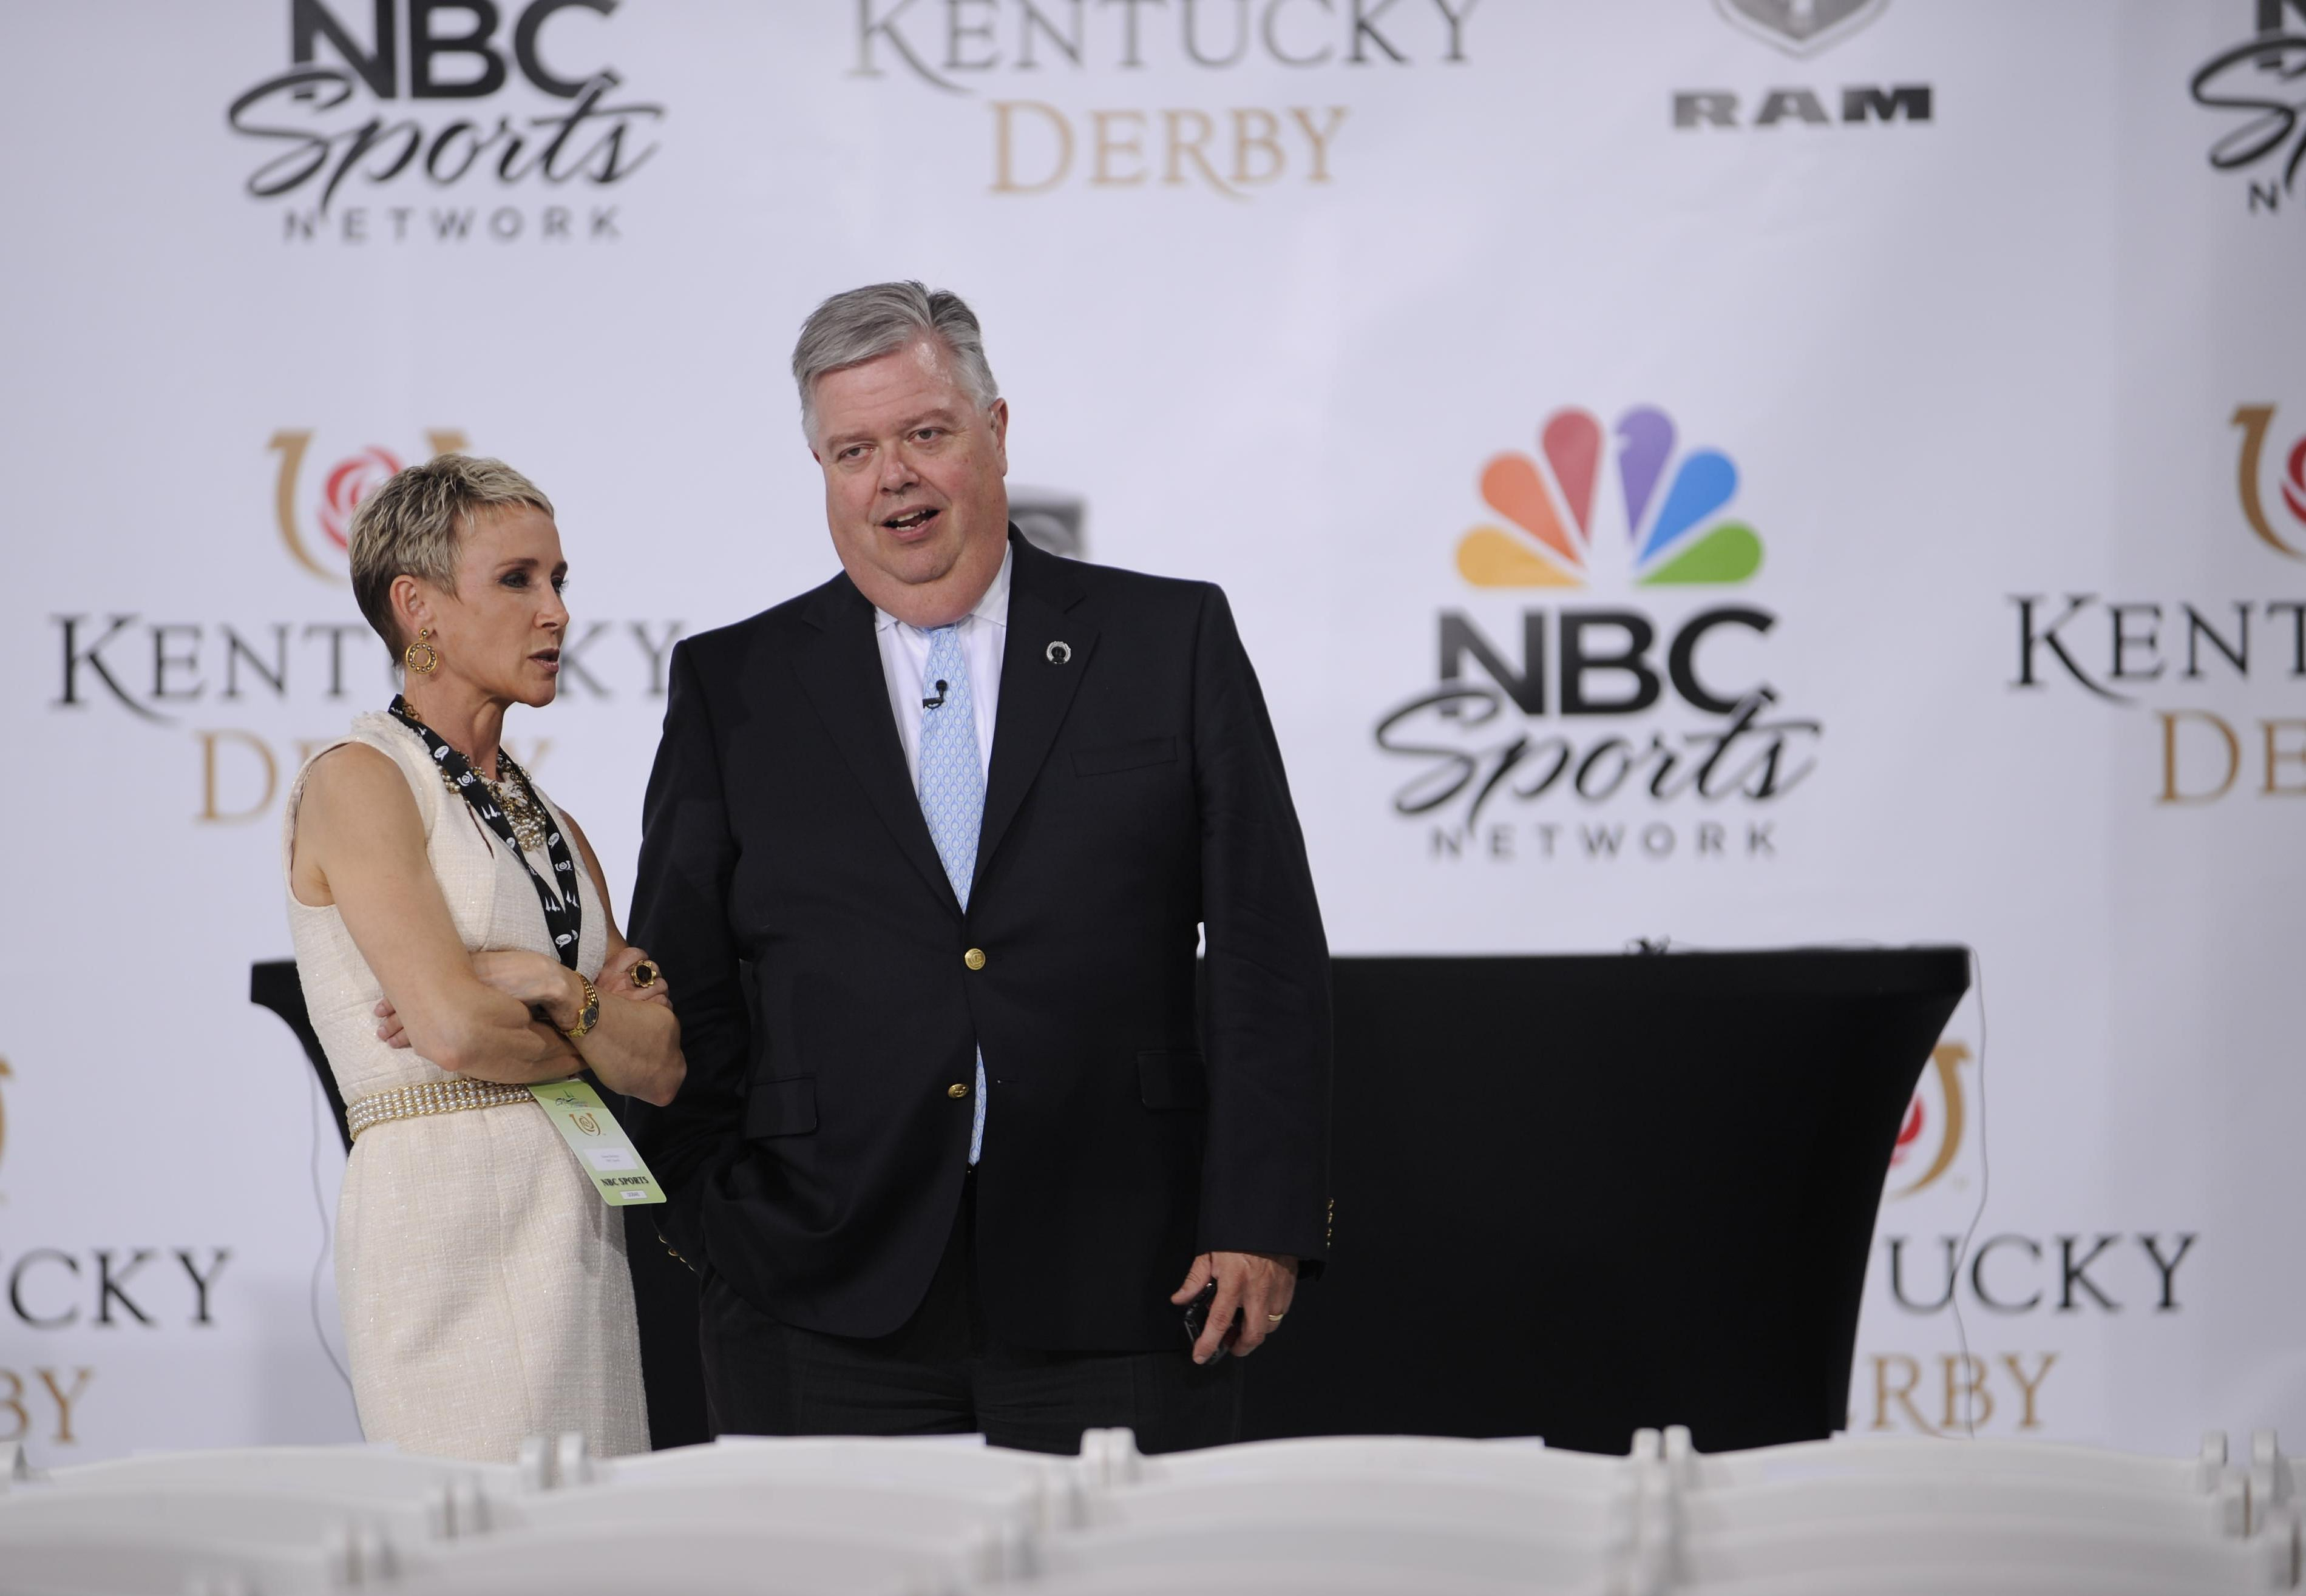 Barton Brothers and John Asher at Kentucky Derby fesitivities in 2012.